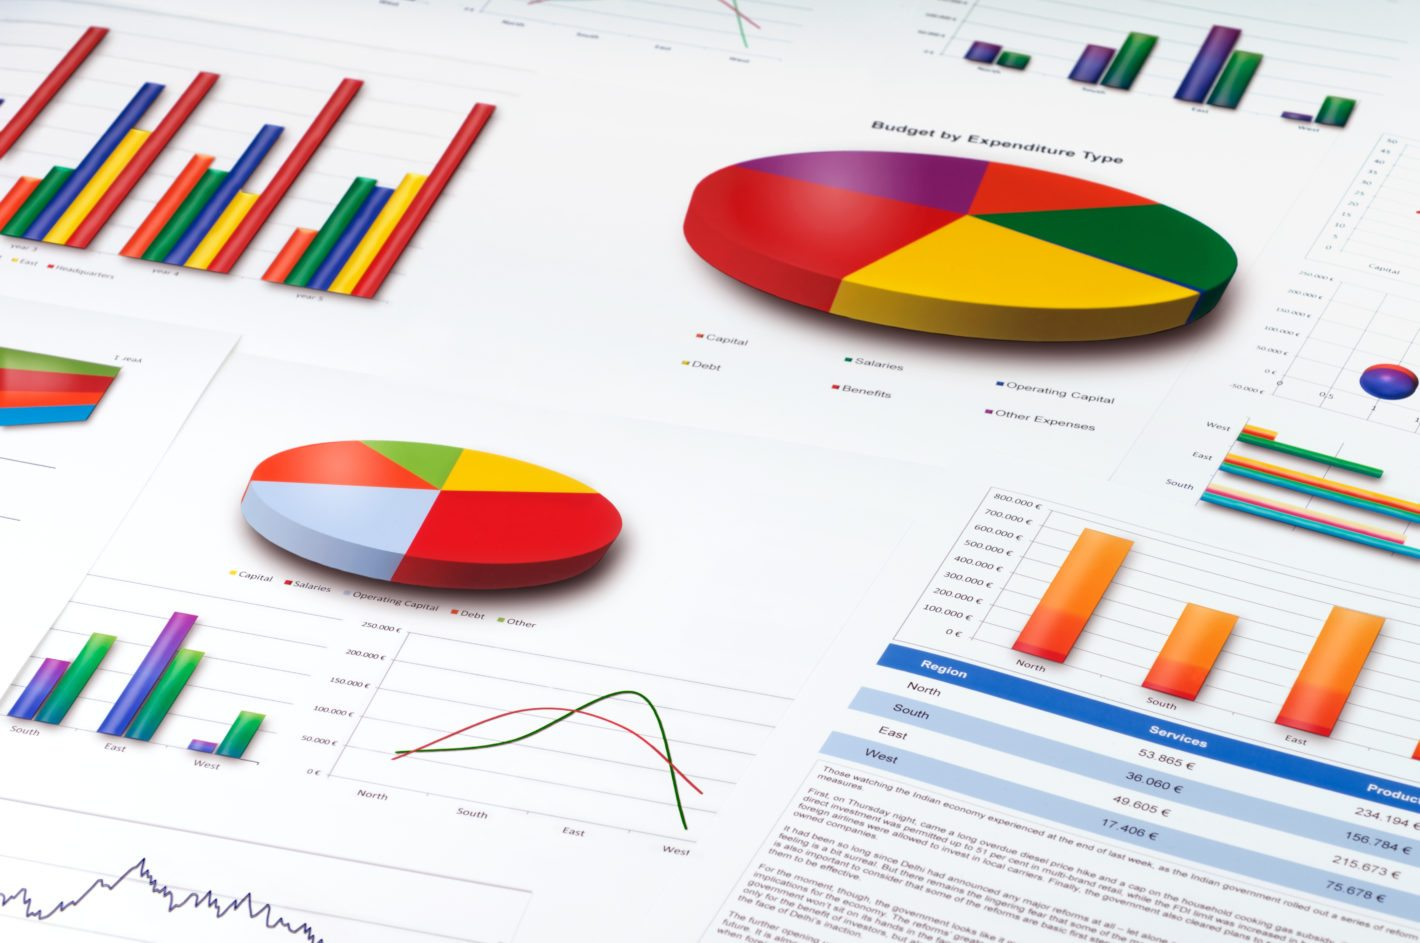 5 Plugins That Display Beautiful Charts And Graphs In